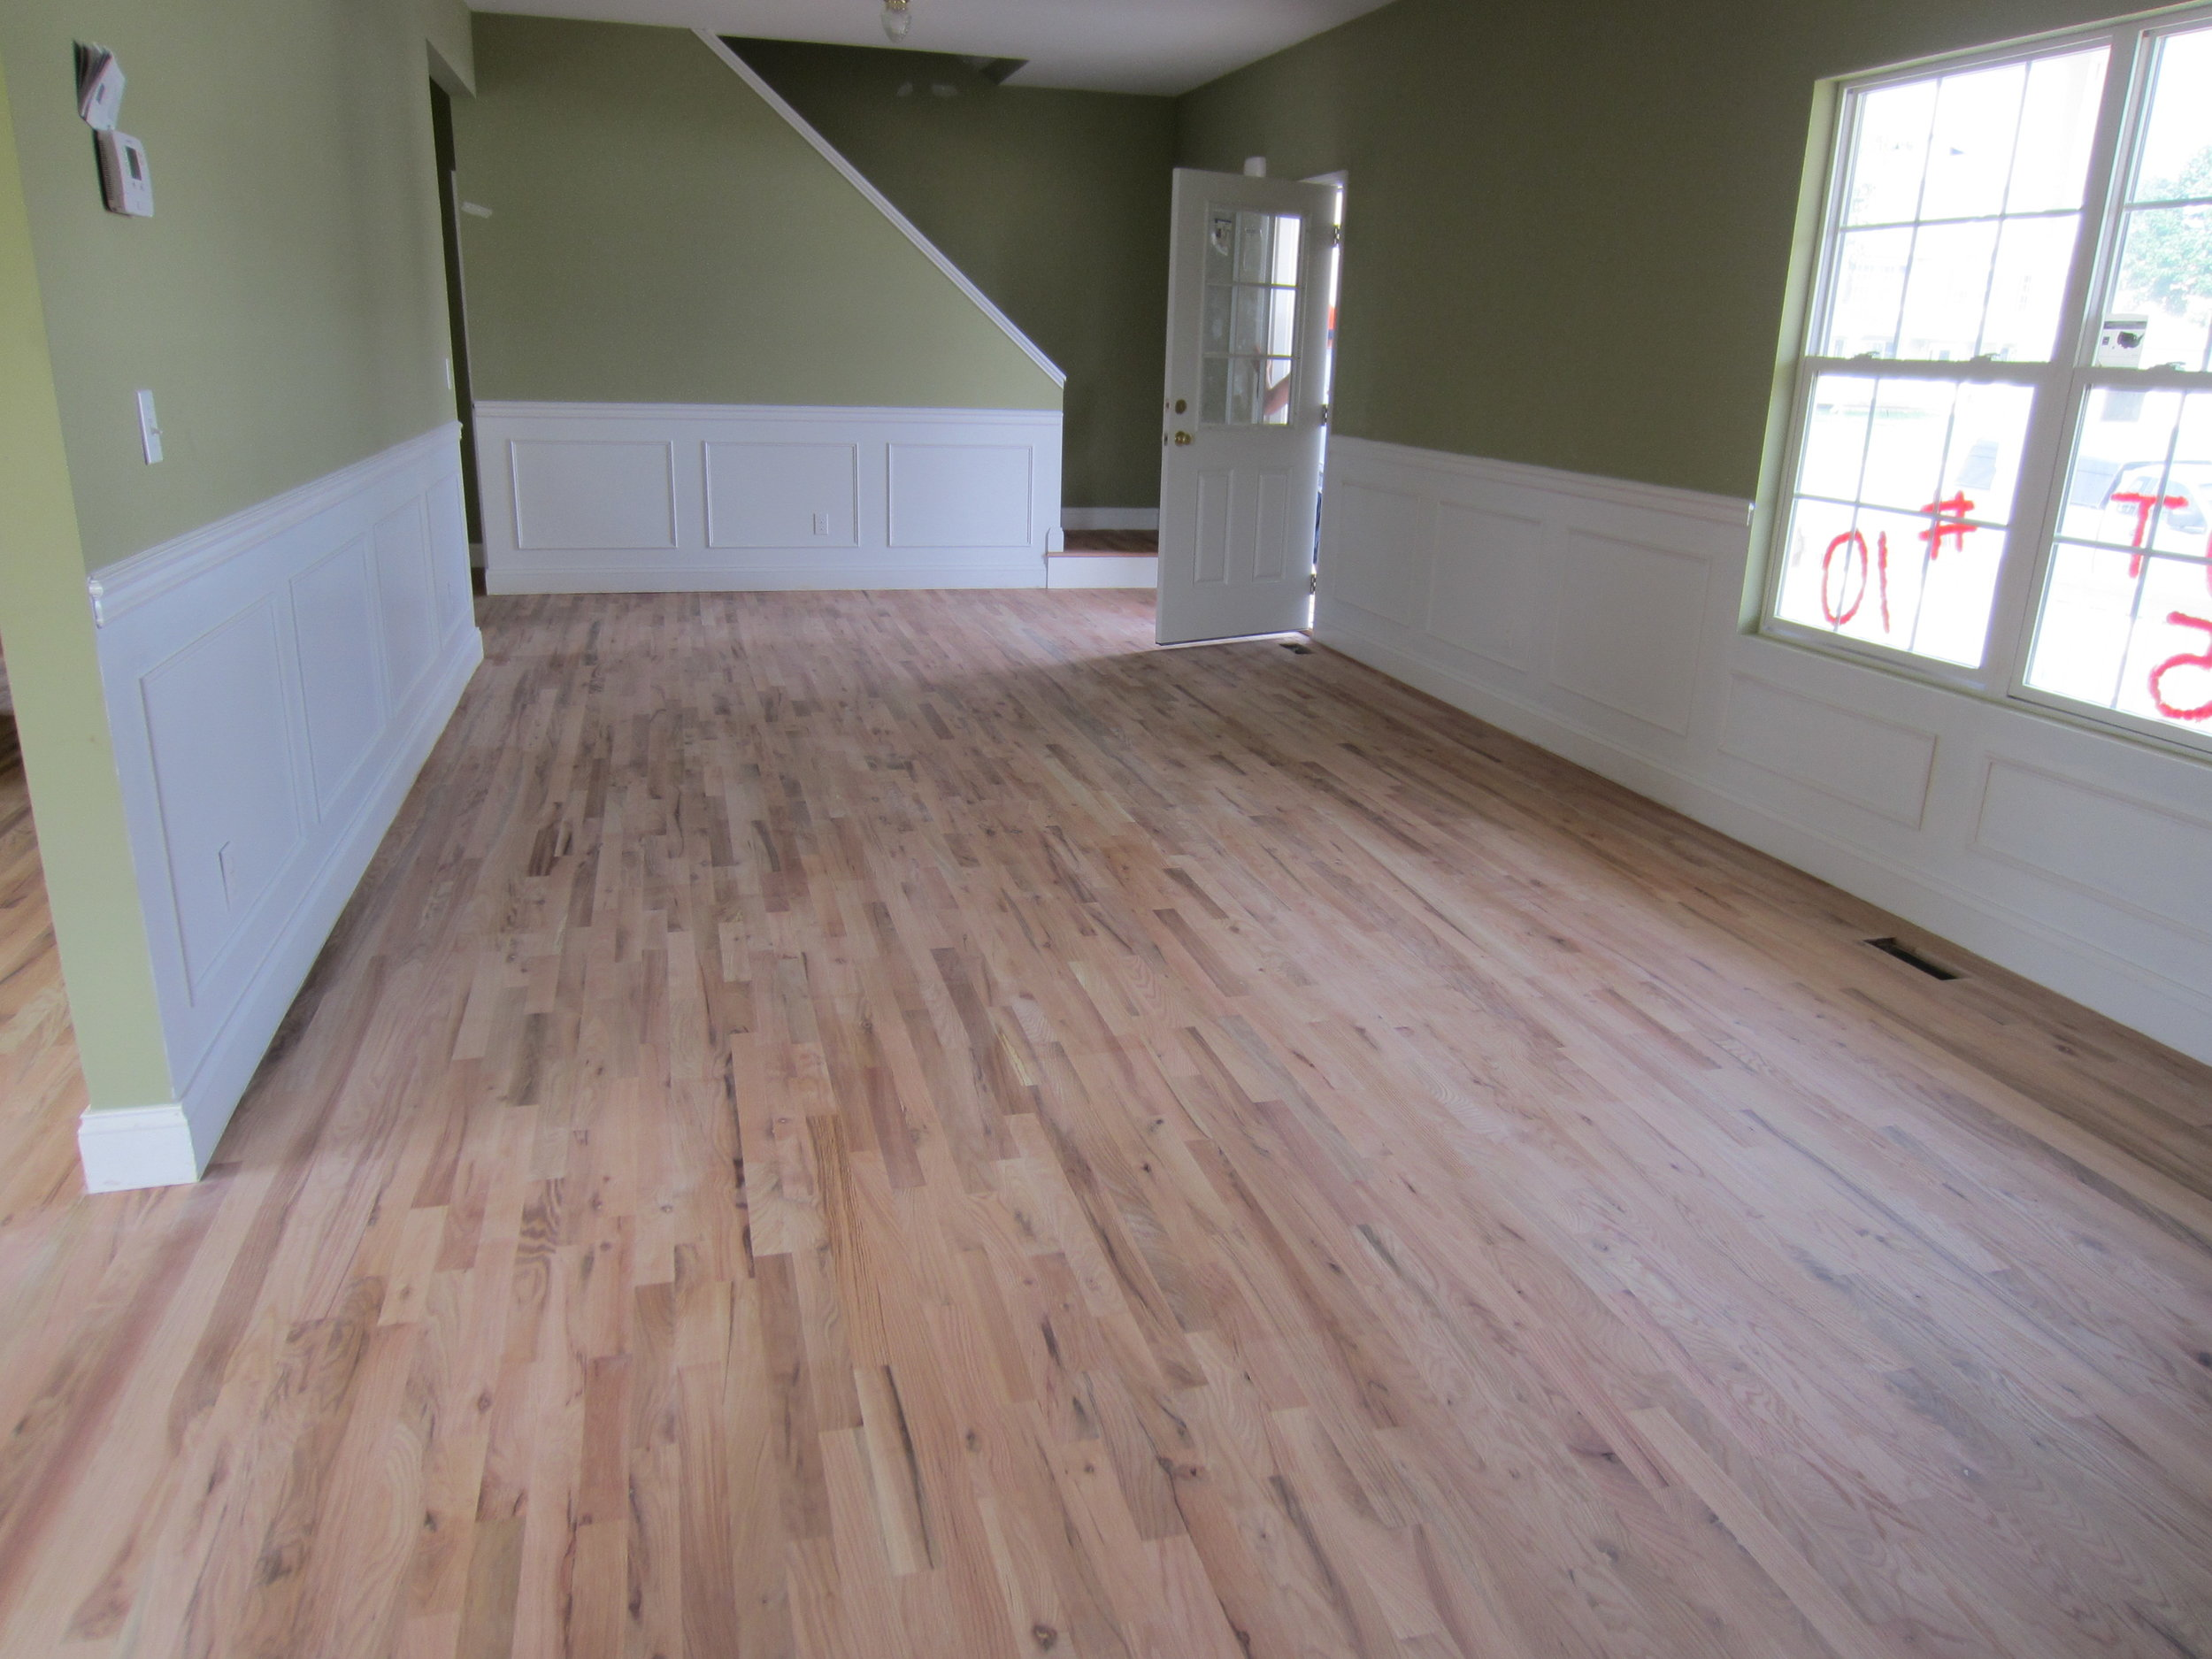 Hardwood floor refinishing project how long does it take valenti hardwood floor refinishing project how long does it take valenti flooring solutioingenieria